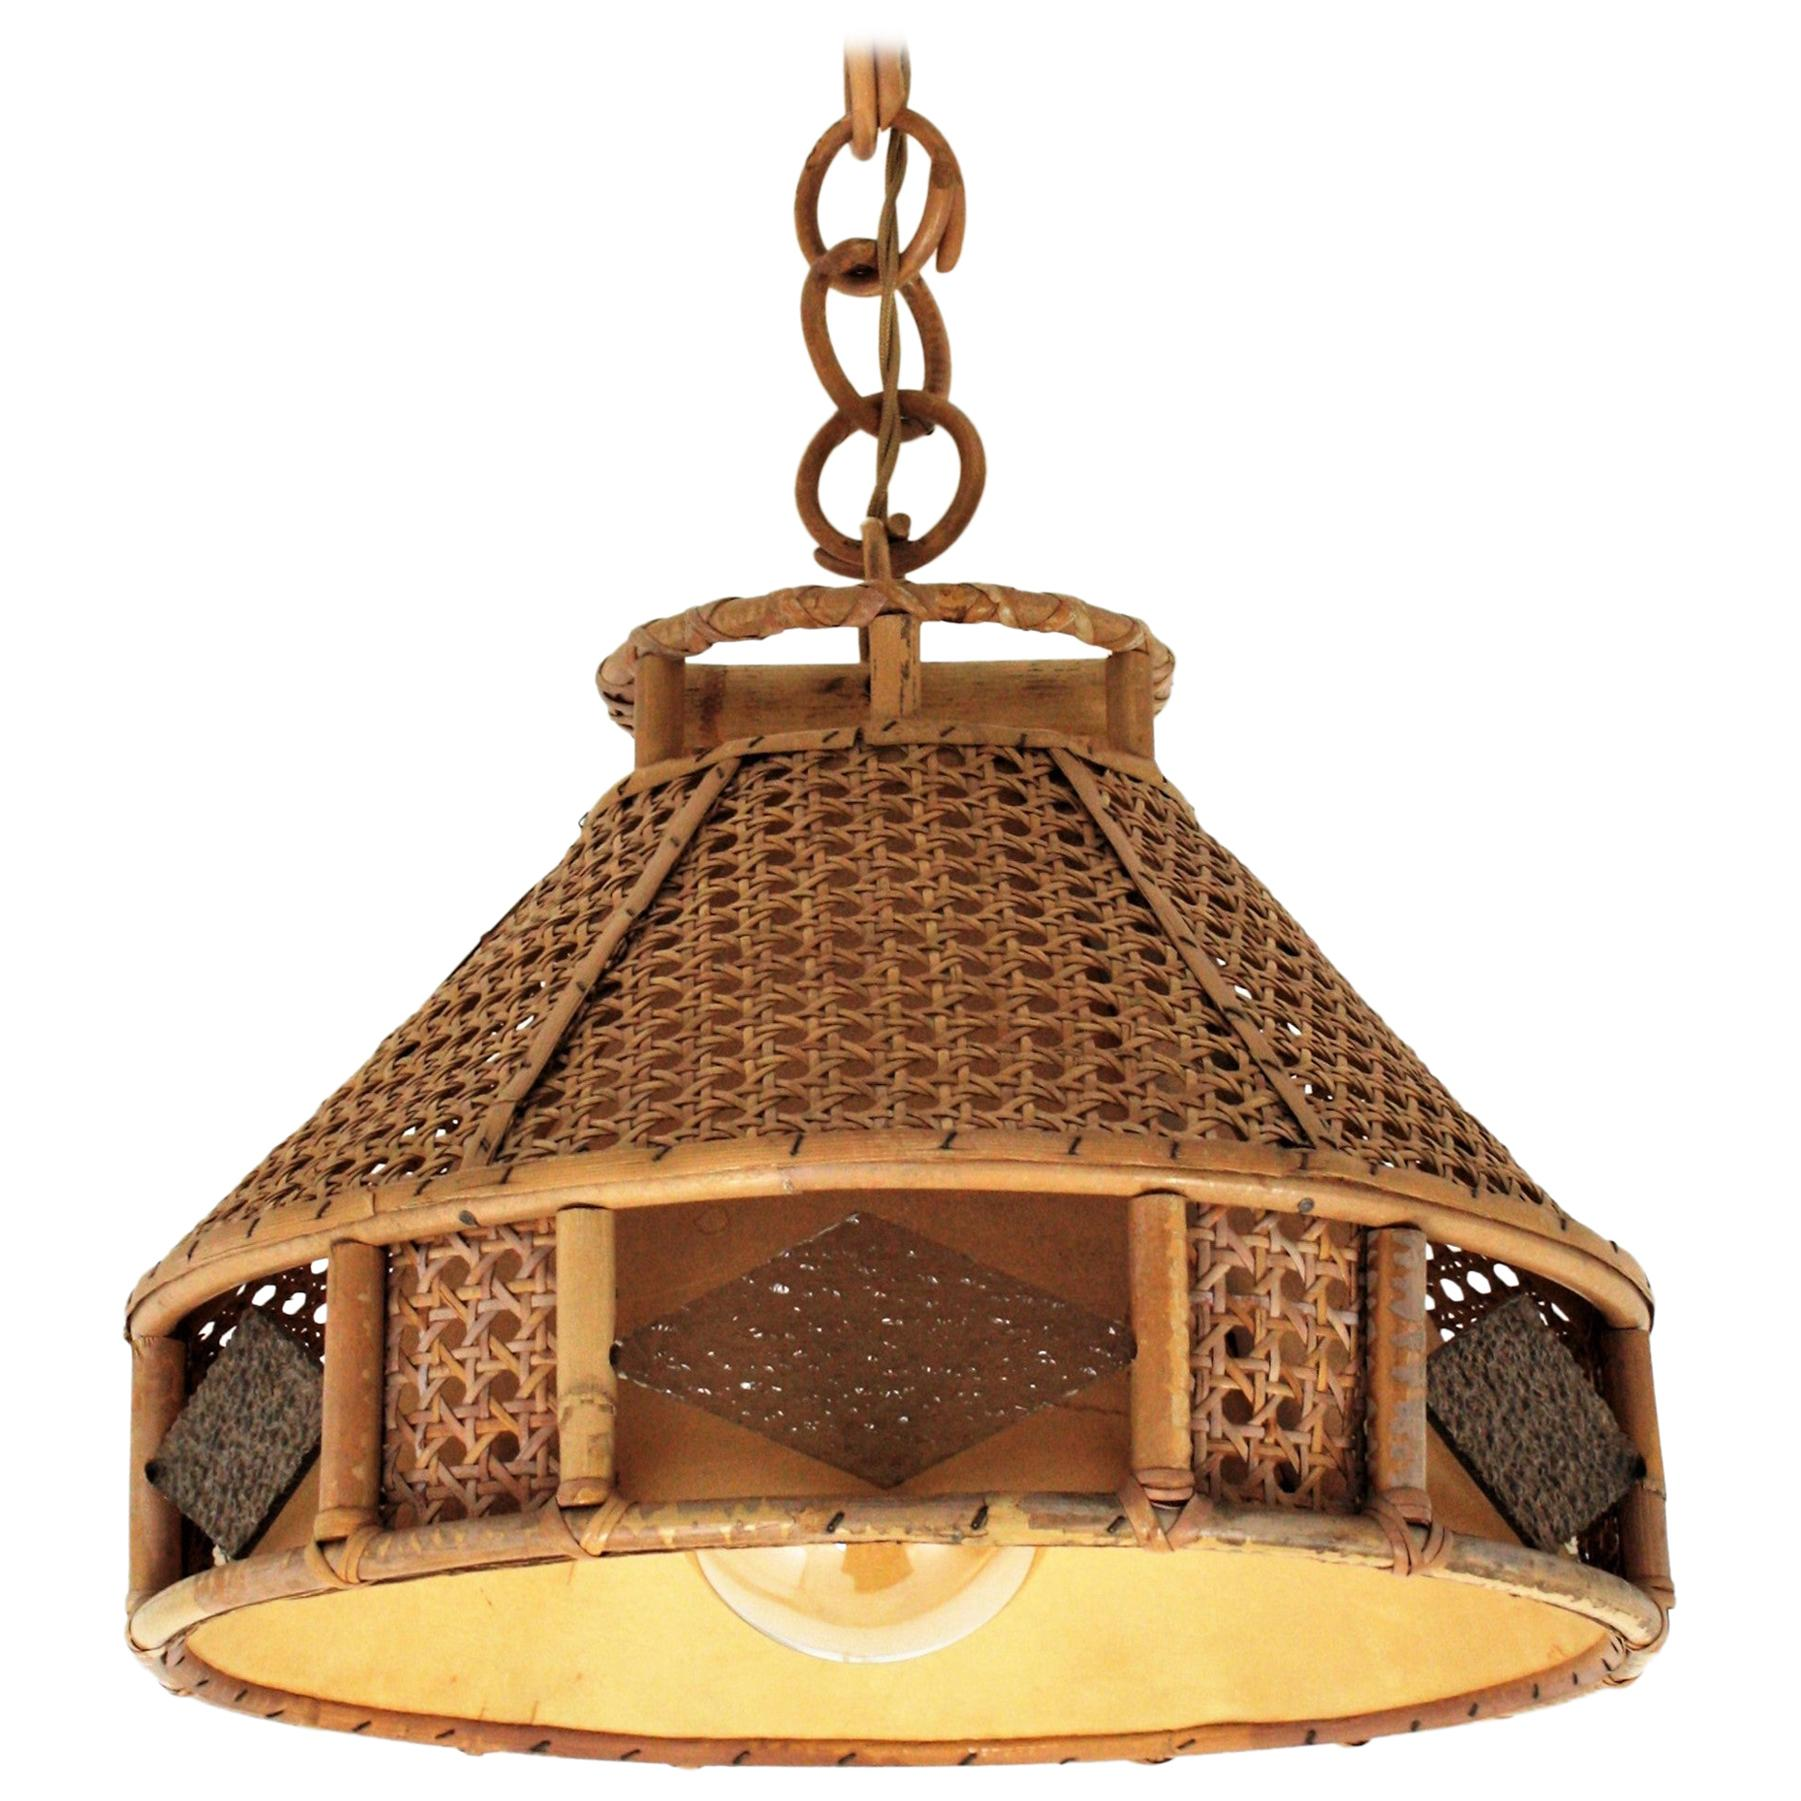 Italian Modernist Wicker Wire & Rattan Pendant Hanging Light with Glass Accents